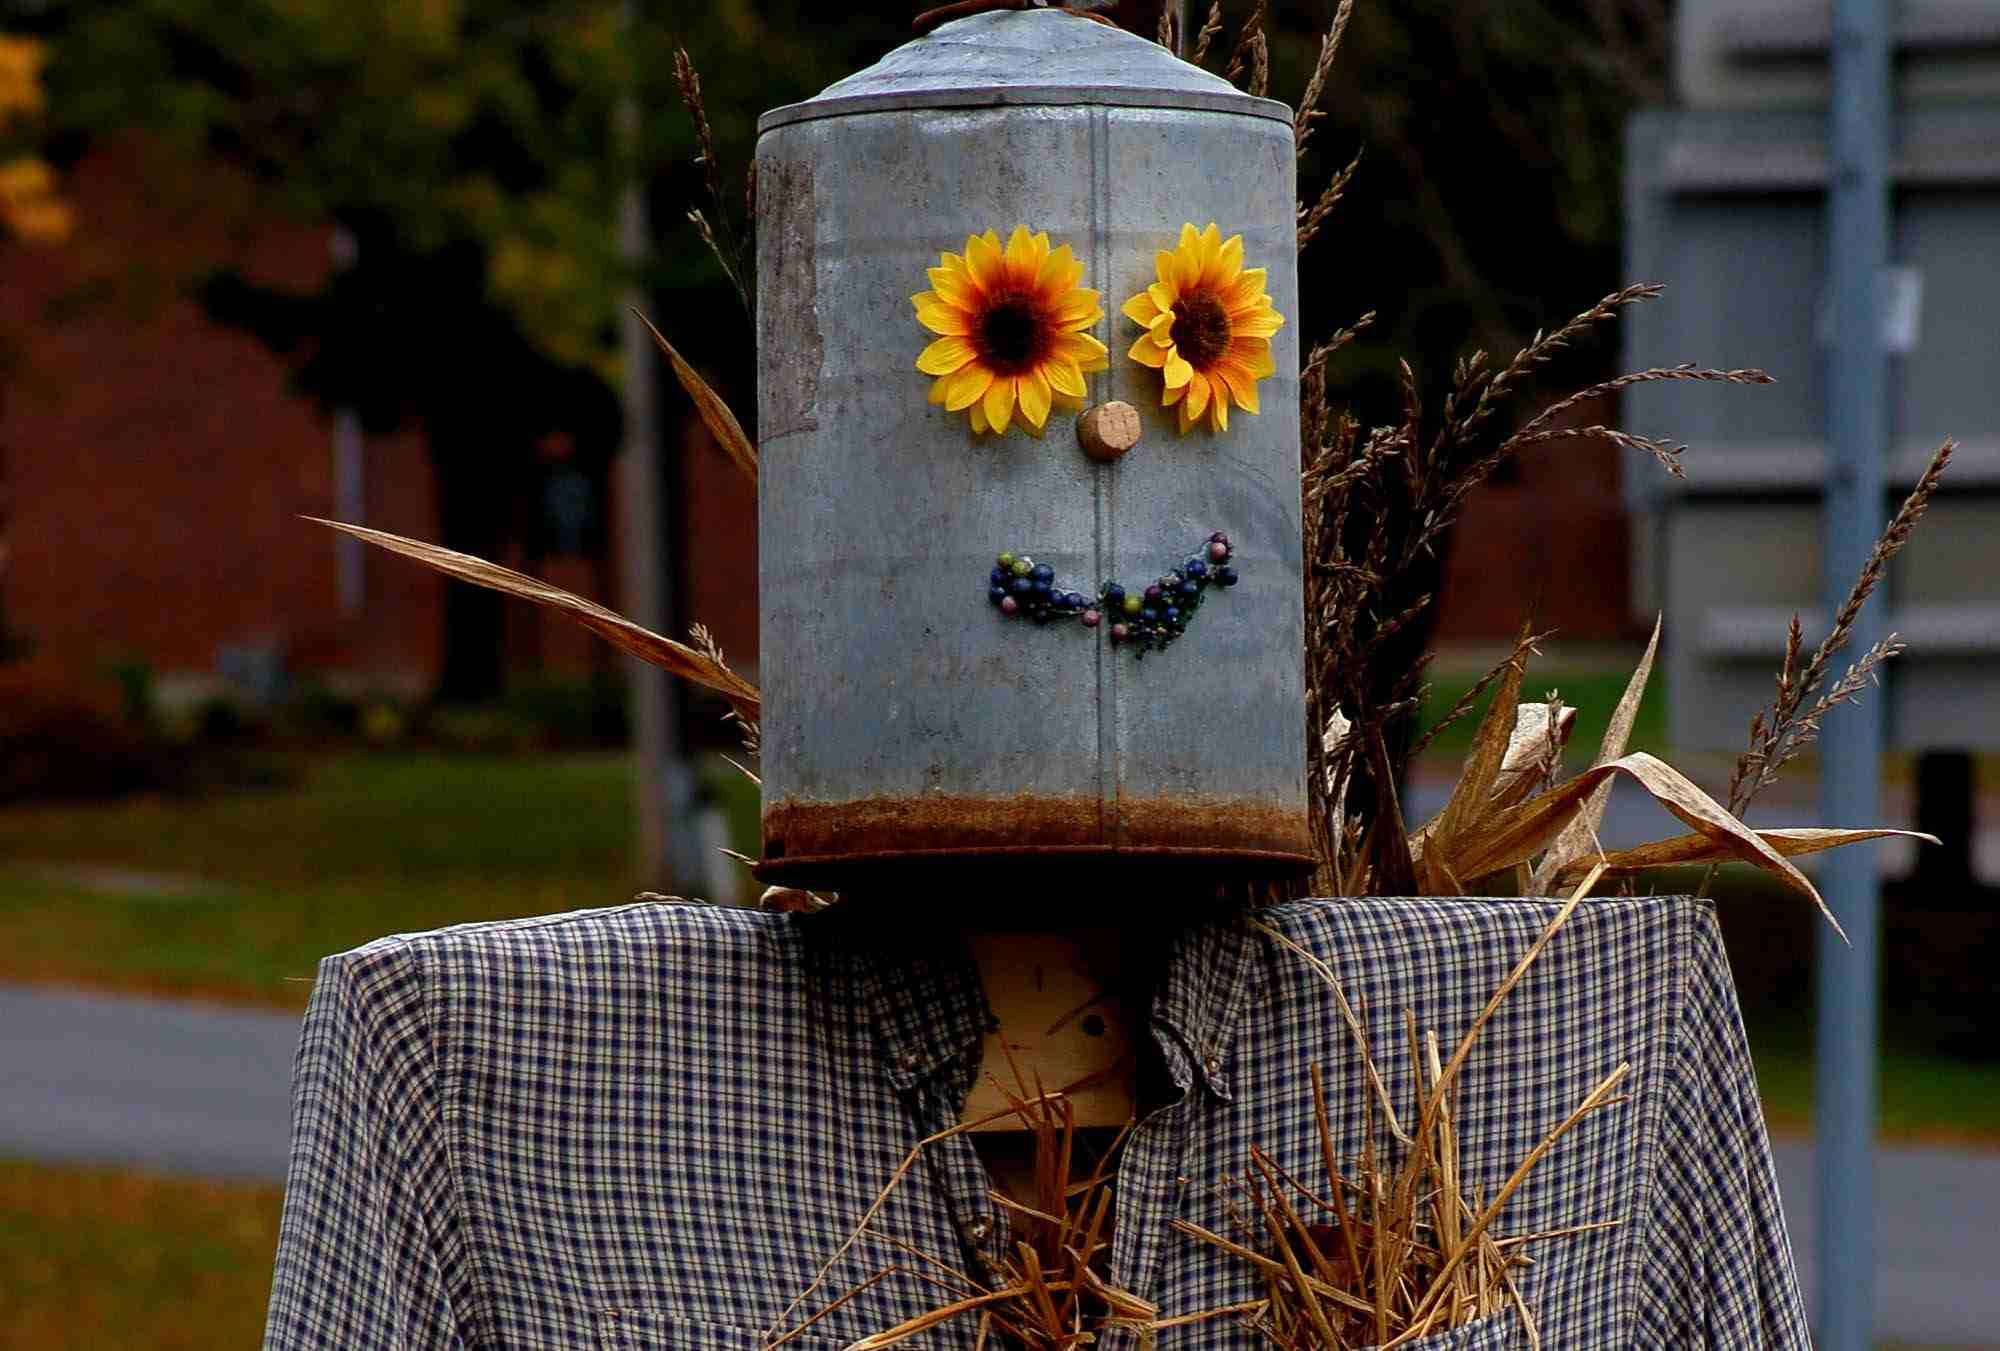 Scarecrow with a metal pot for a head